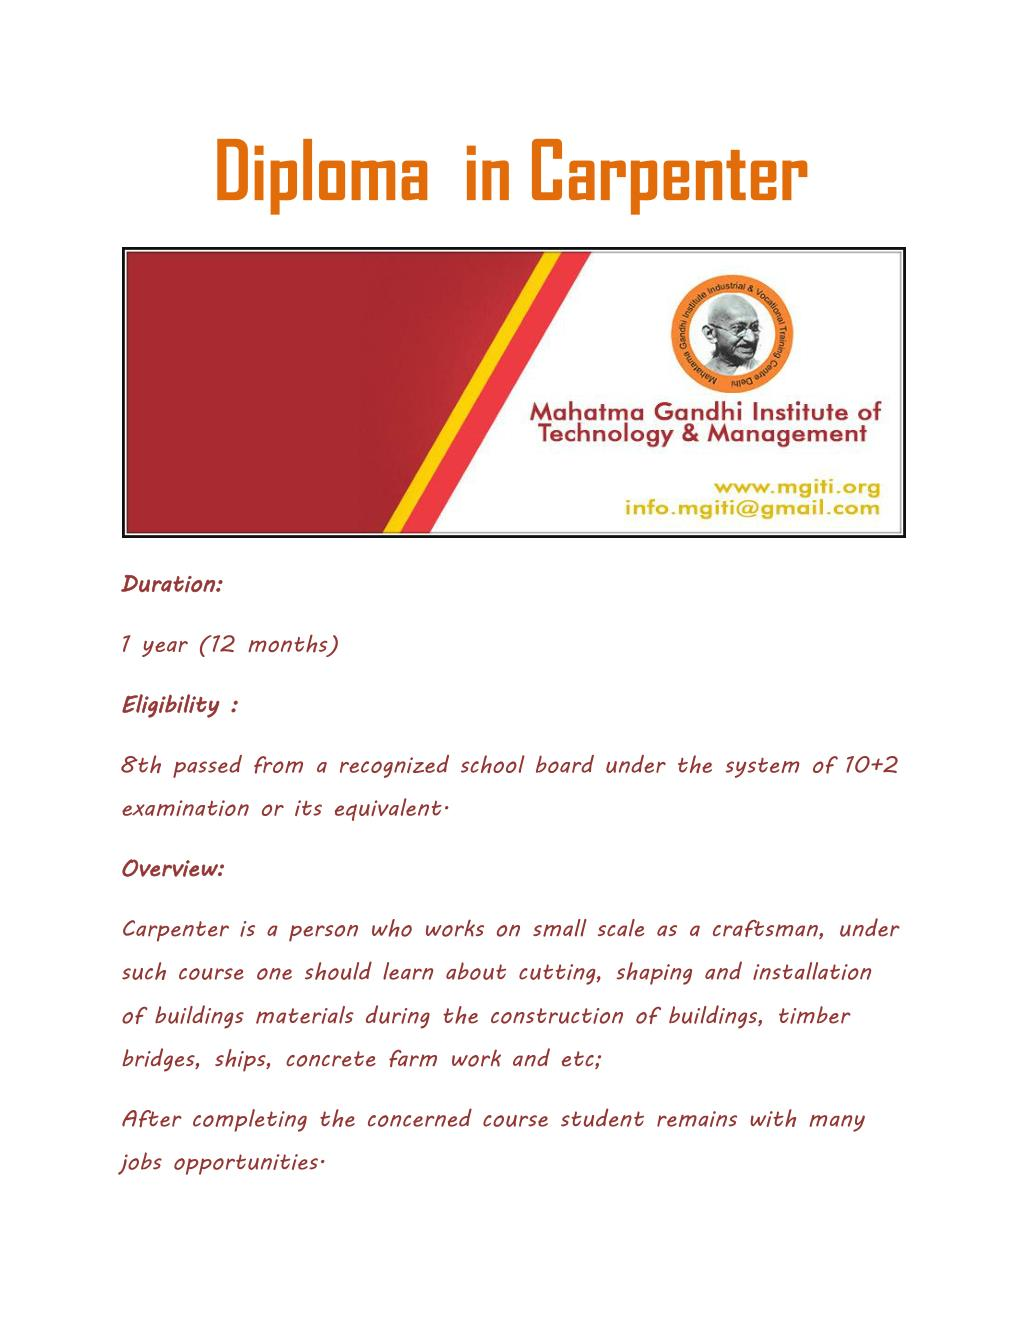 PPT - Diploma in Carpenter PowerPoint Presentation - ID:7463422